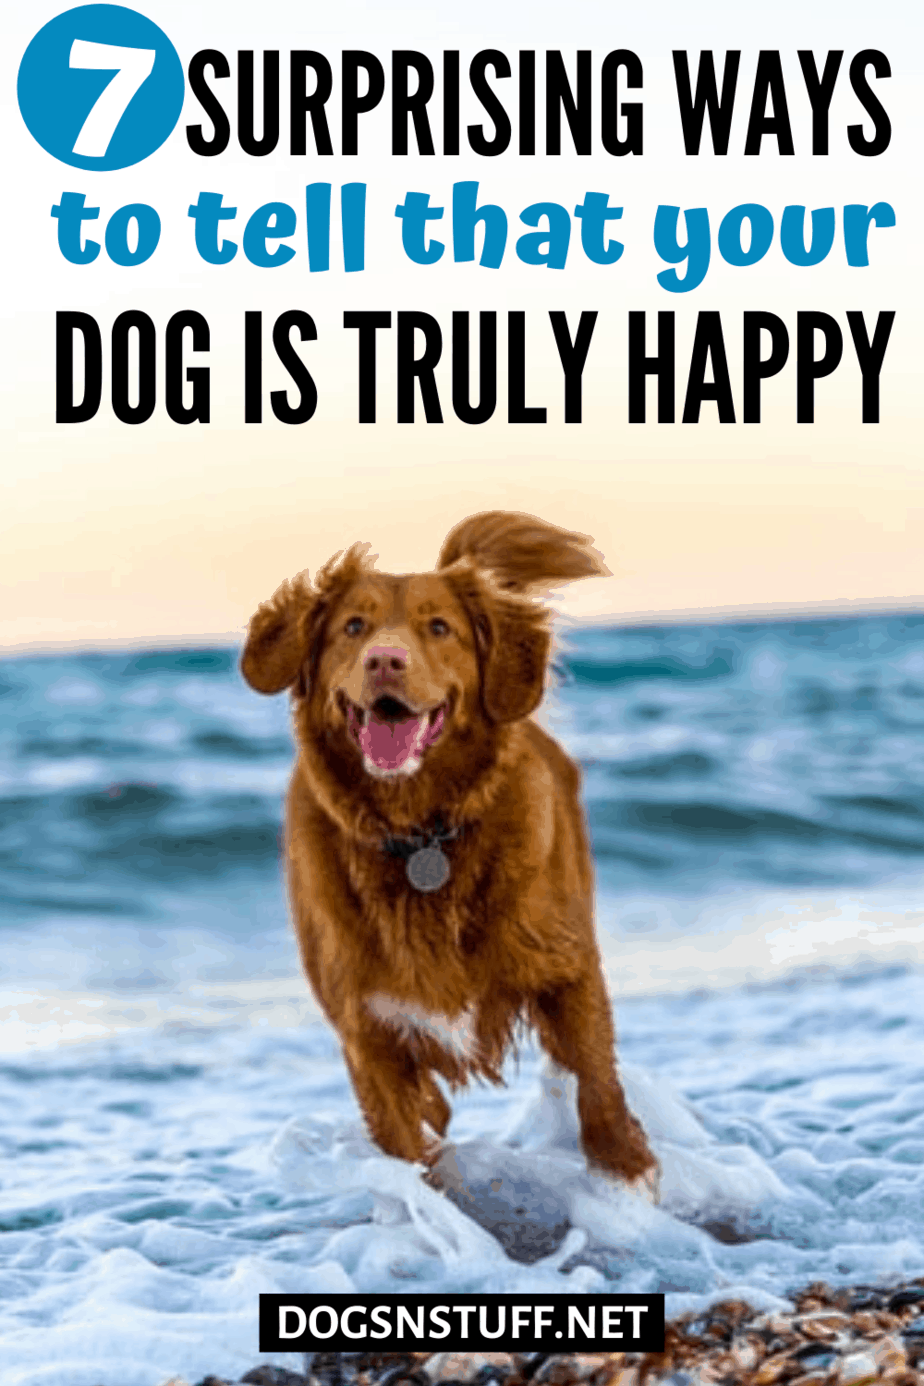 How to tell if a dog is happy